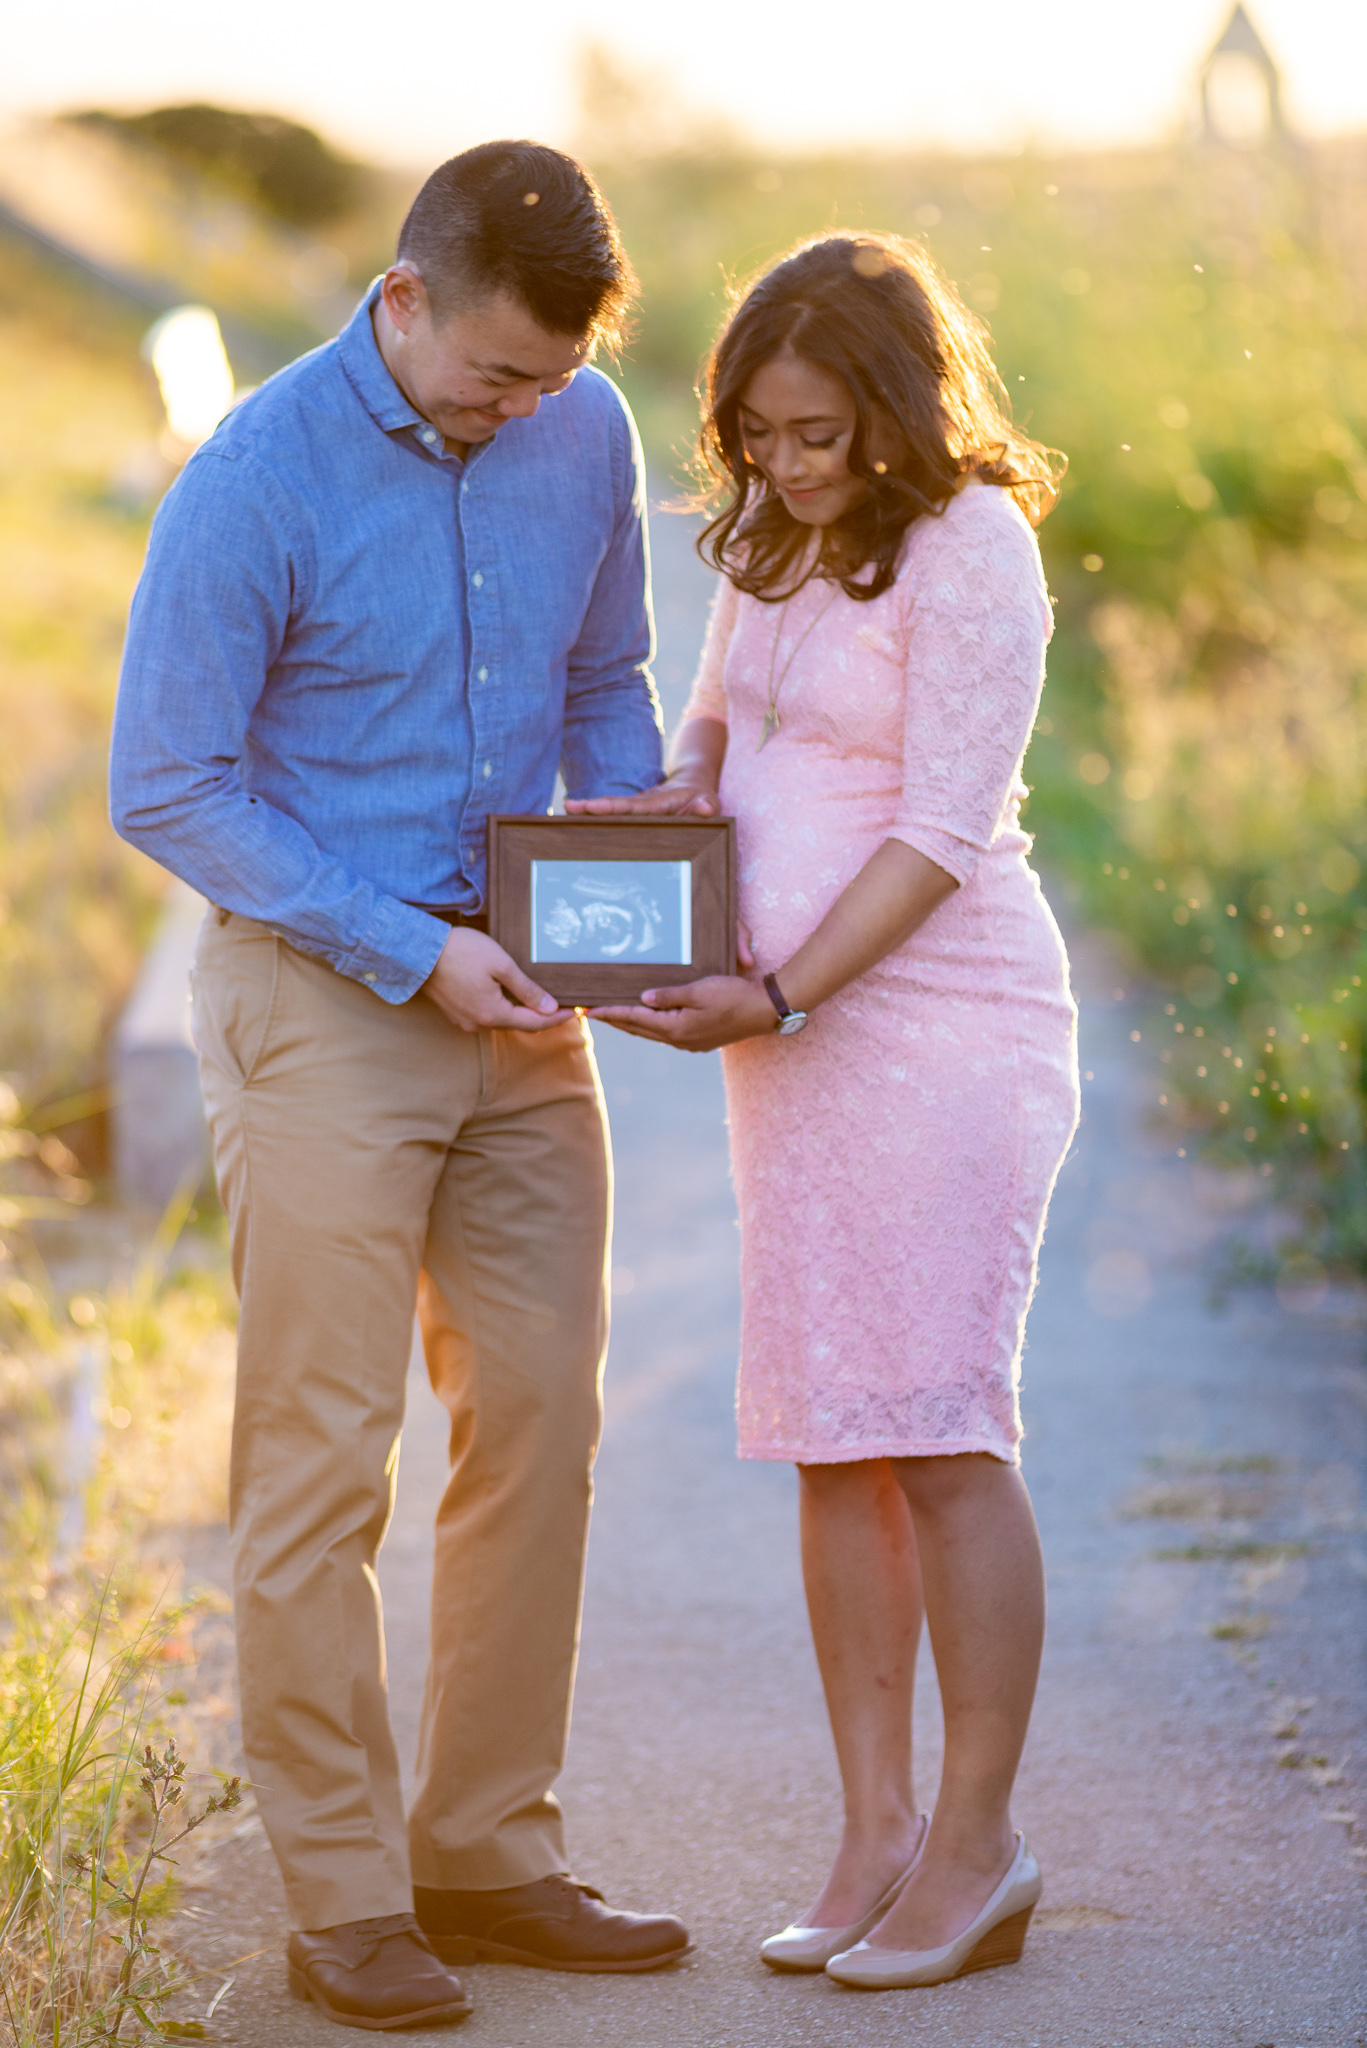 Evening Sunset Maternity Photo Shoot-16.jpg